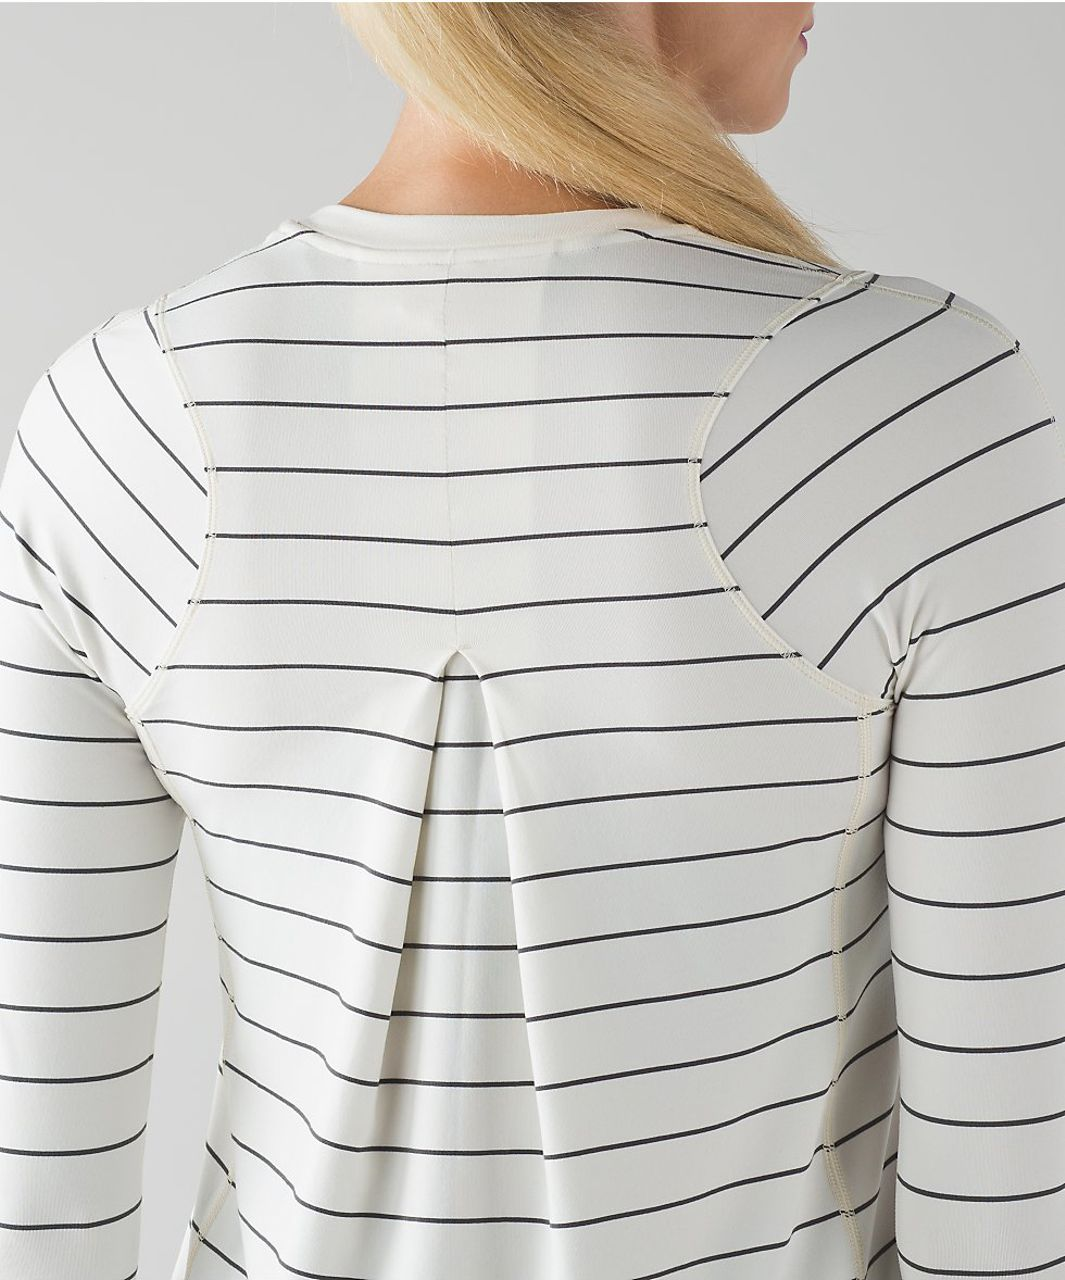 Lululemon Tuck And Flow Long Sleeve - Silver Spoon Angel Wing (AU release)